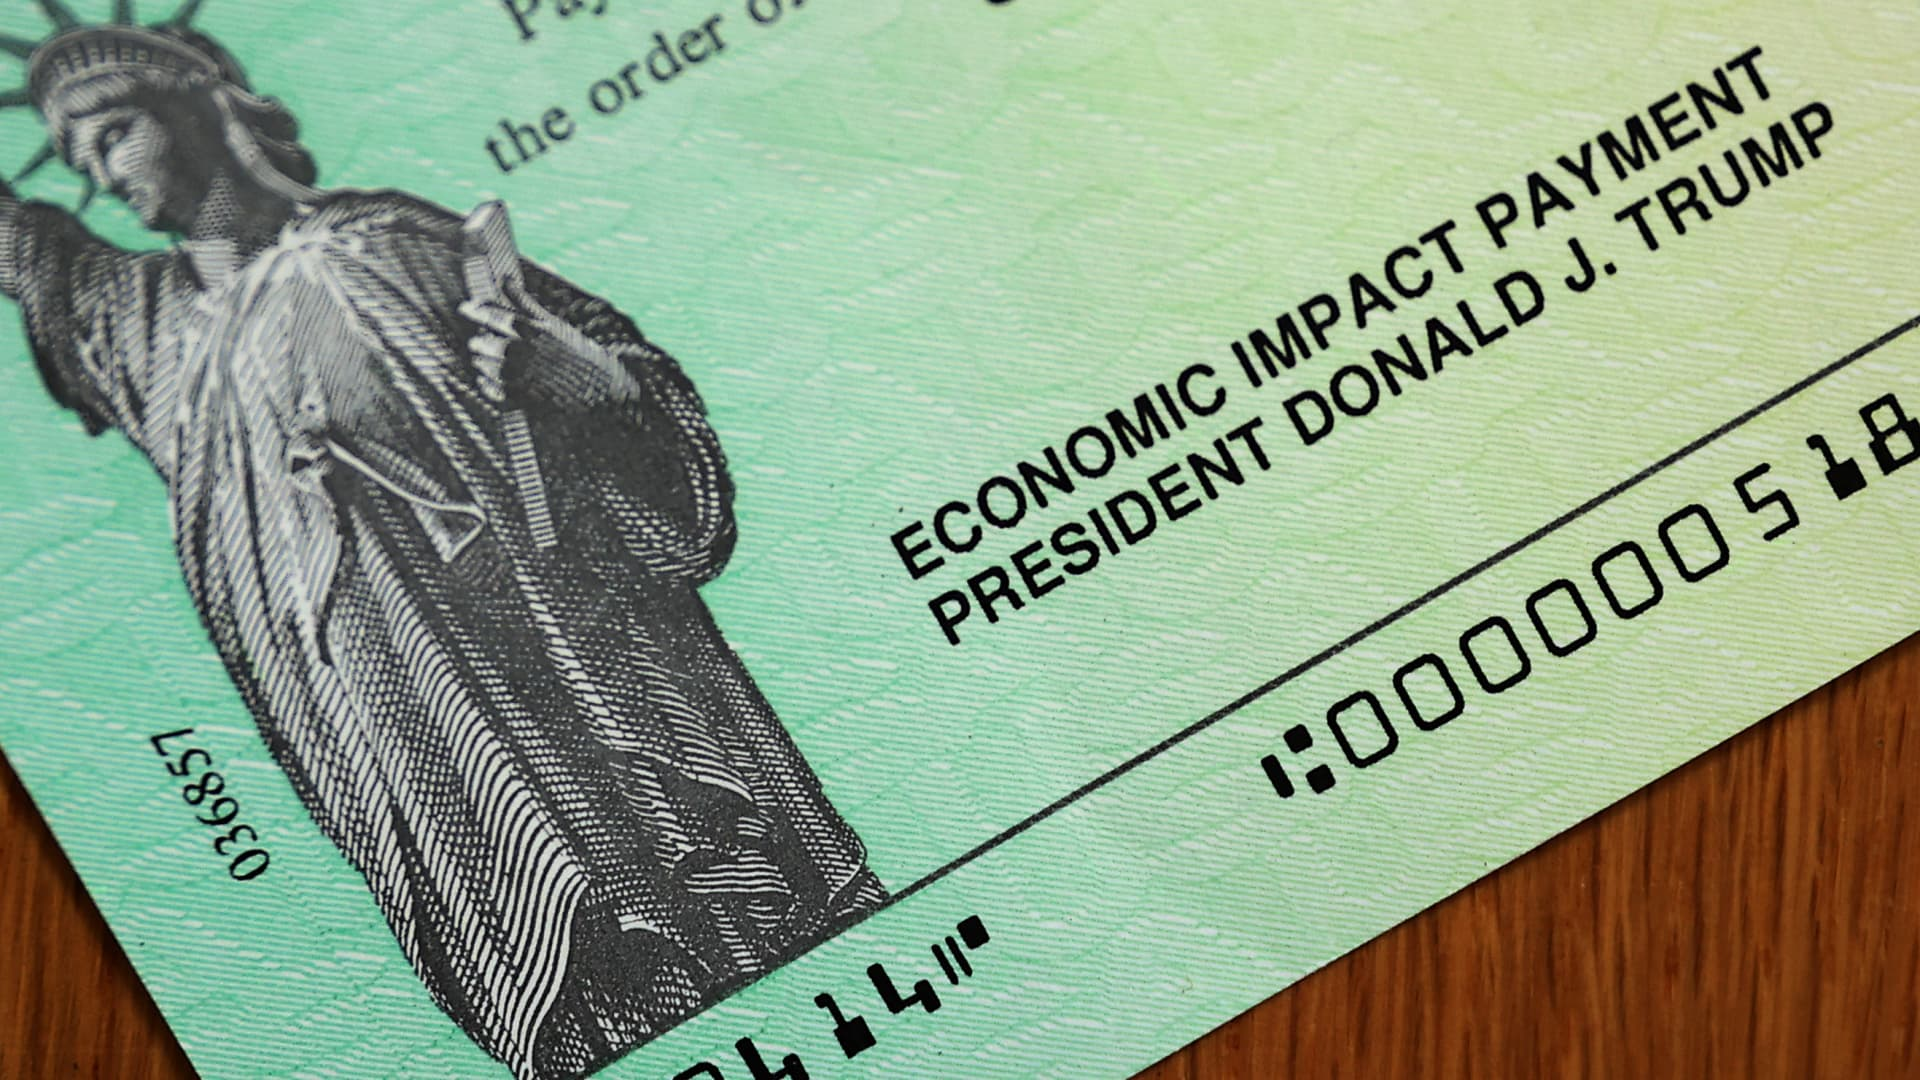 President Donald Trump's name appeared on coronavirus economic assistance checks that sent to citizens across the country April 29, 2020.